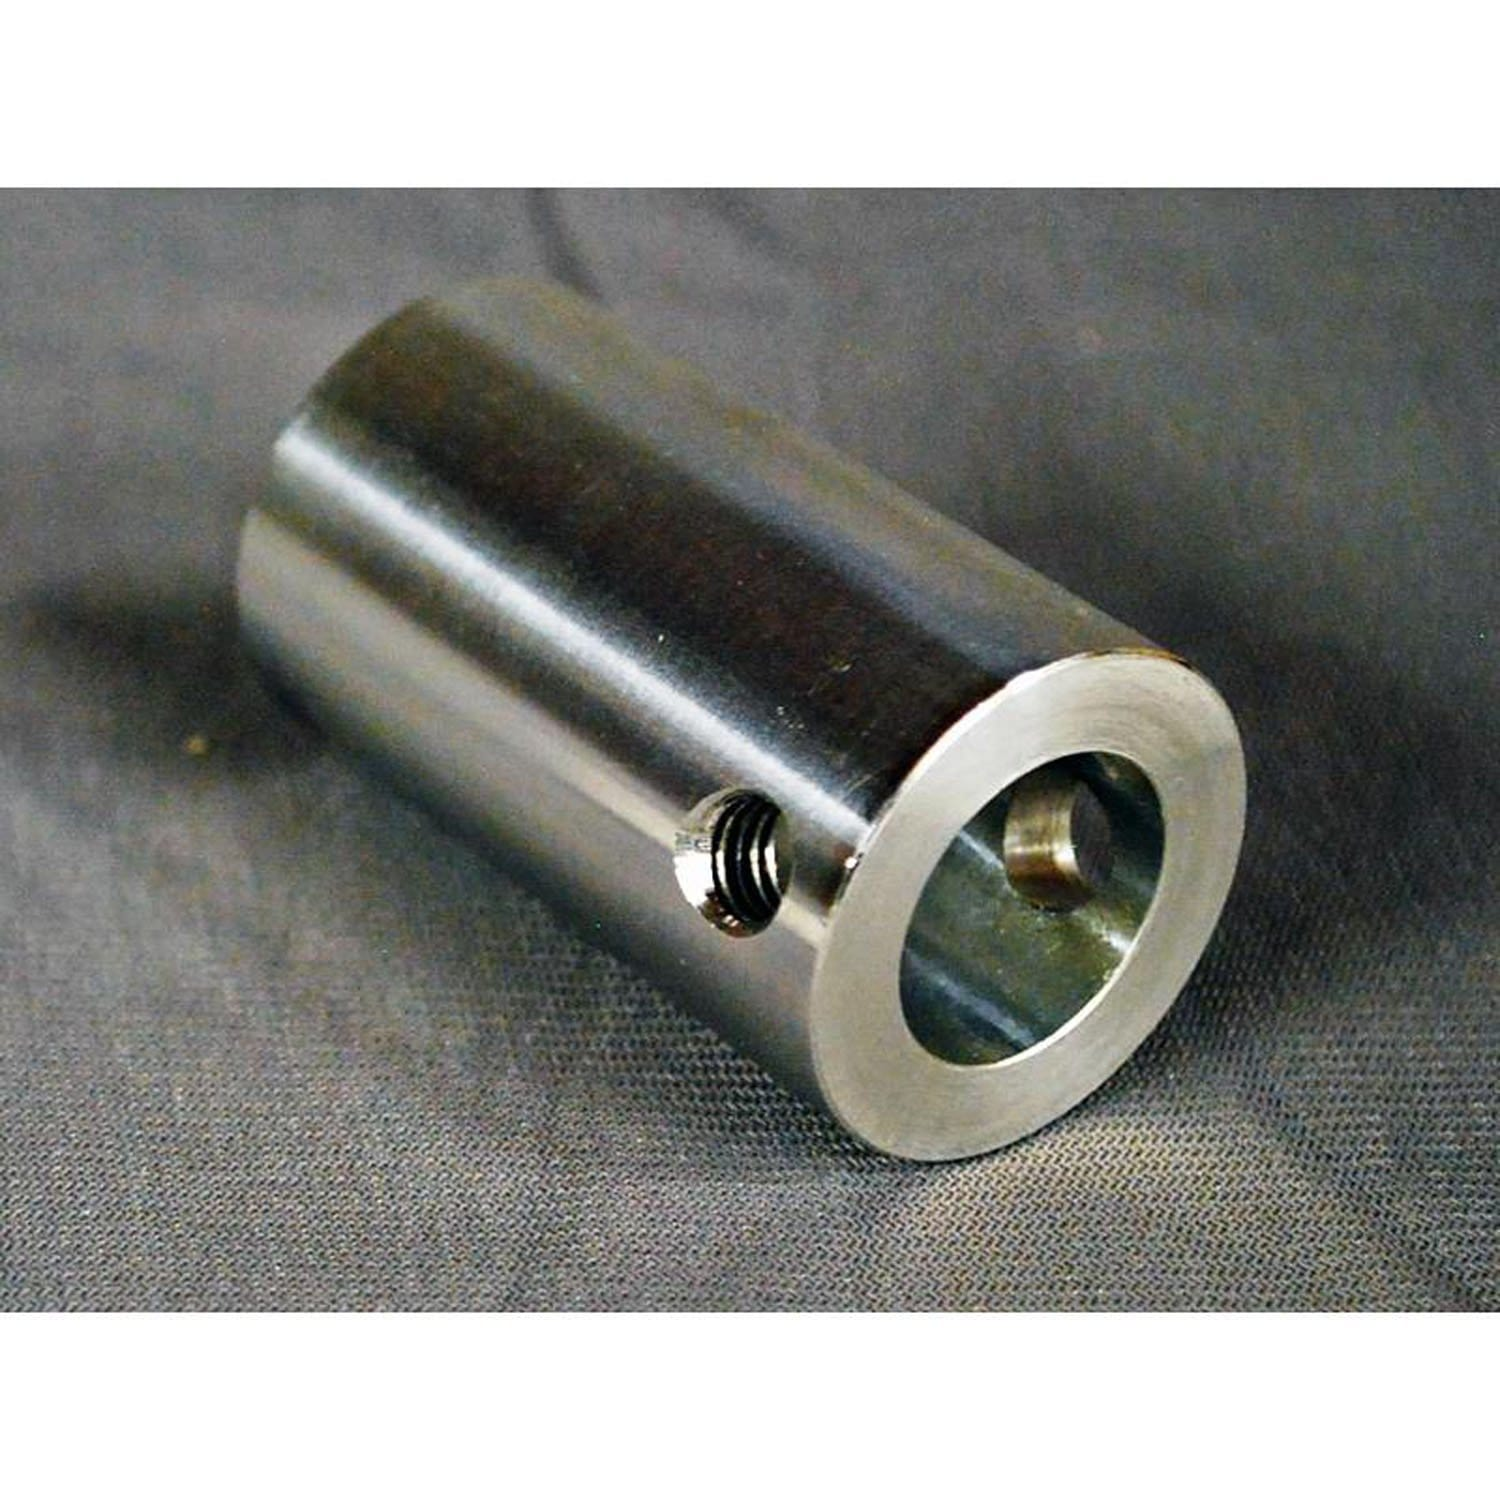 "Ducati 848/1098/1198 (2007+)Underbody Slider Base (no bolts/puck) - Both Sides 2-1/8"" - Woodcraft Technologies - Motorcycle Parts"